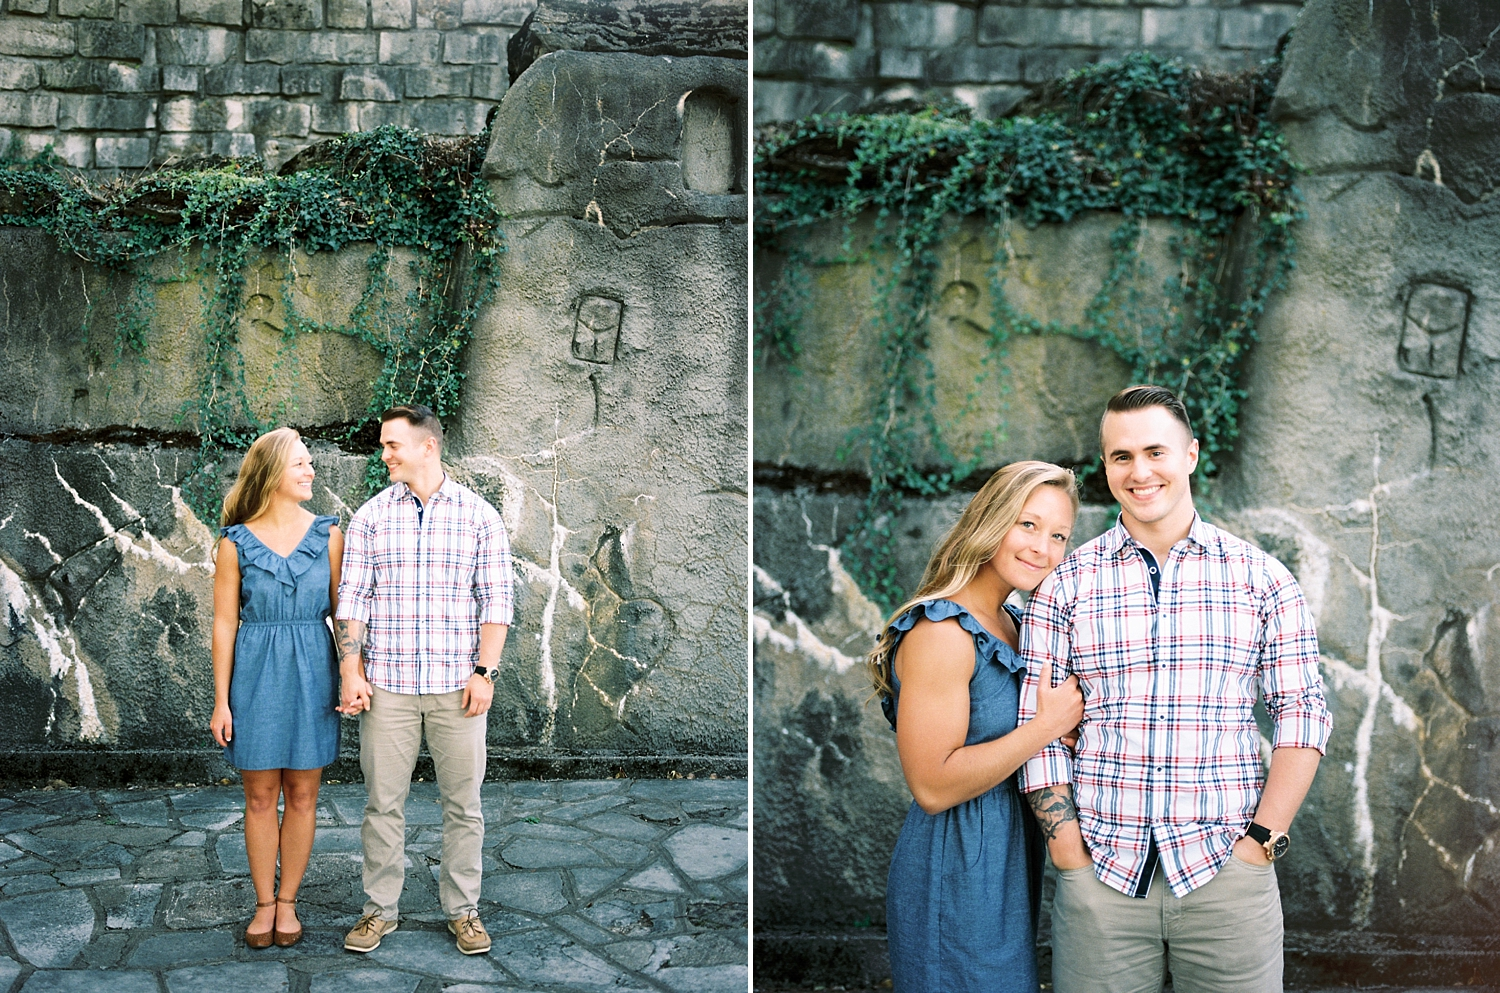 Kathryn Frugé Cincinnati Ohio Film Photographer Engagement Garden of Hope Courtney and Jason 2017 The FIND Lab Kodak Portra 400 Pushed_0008.jpg